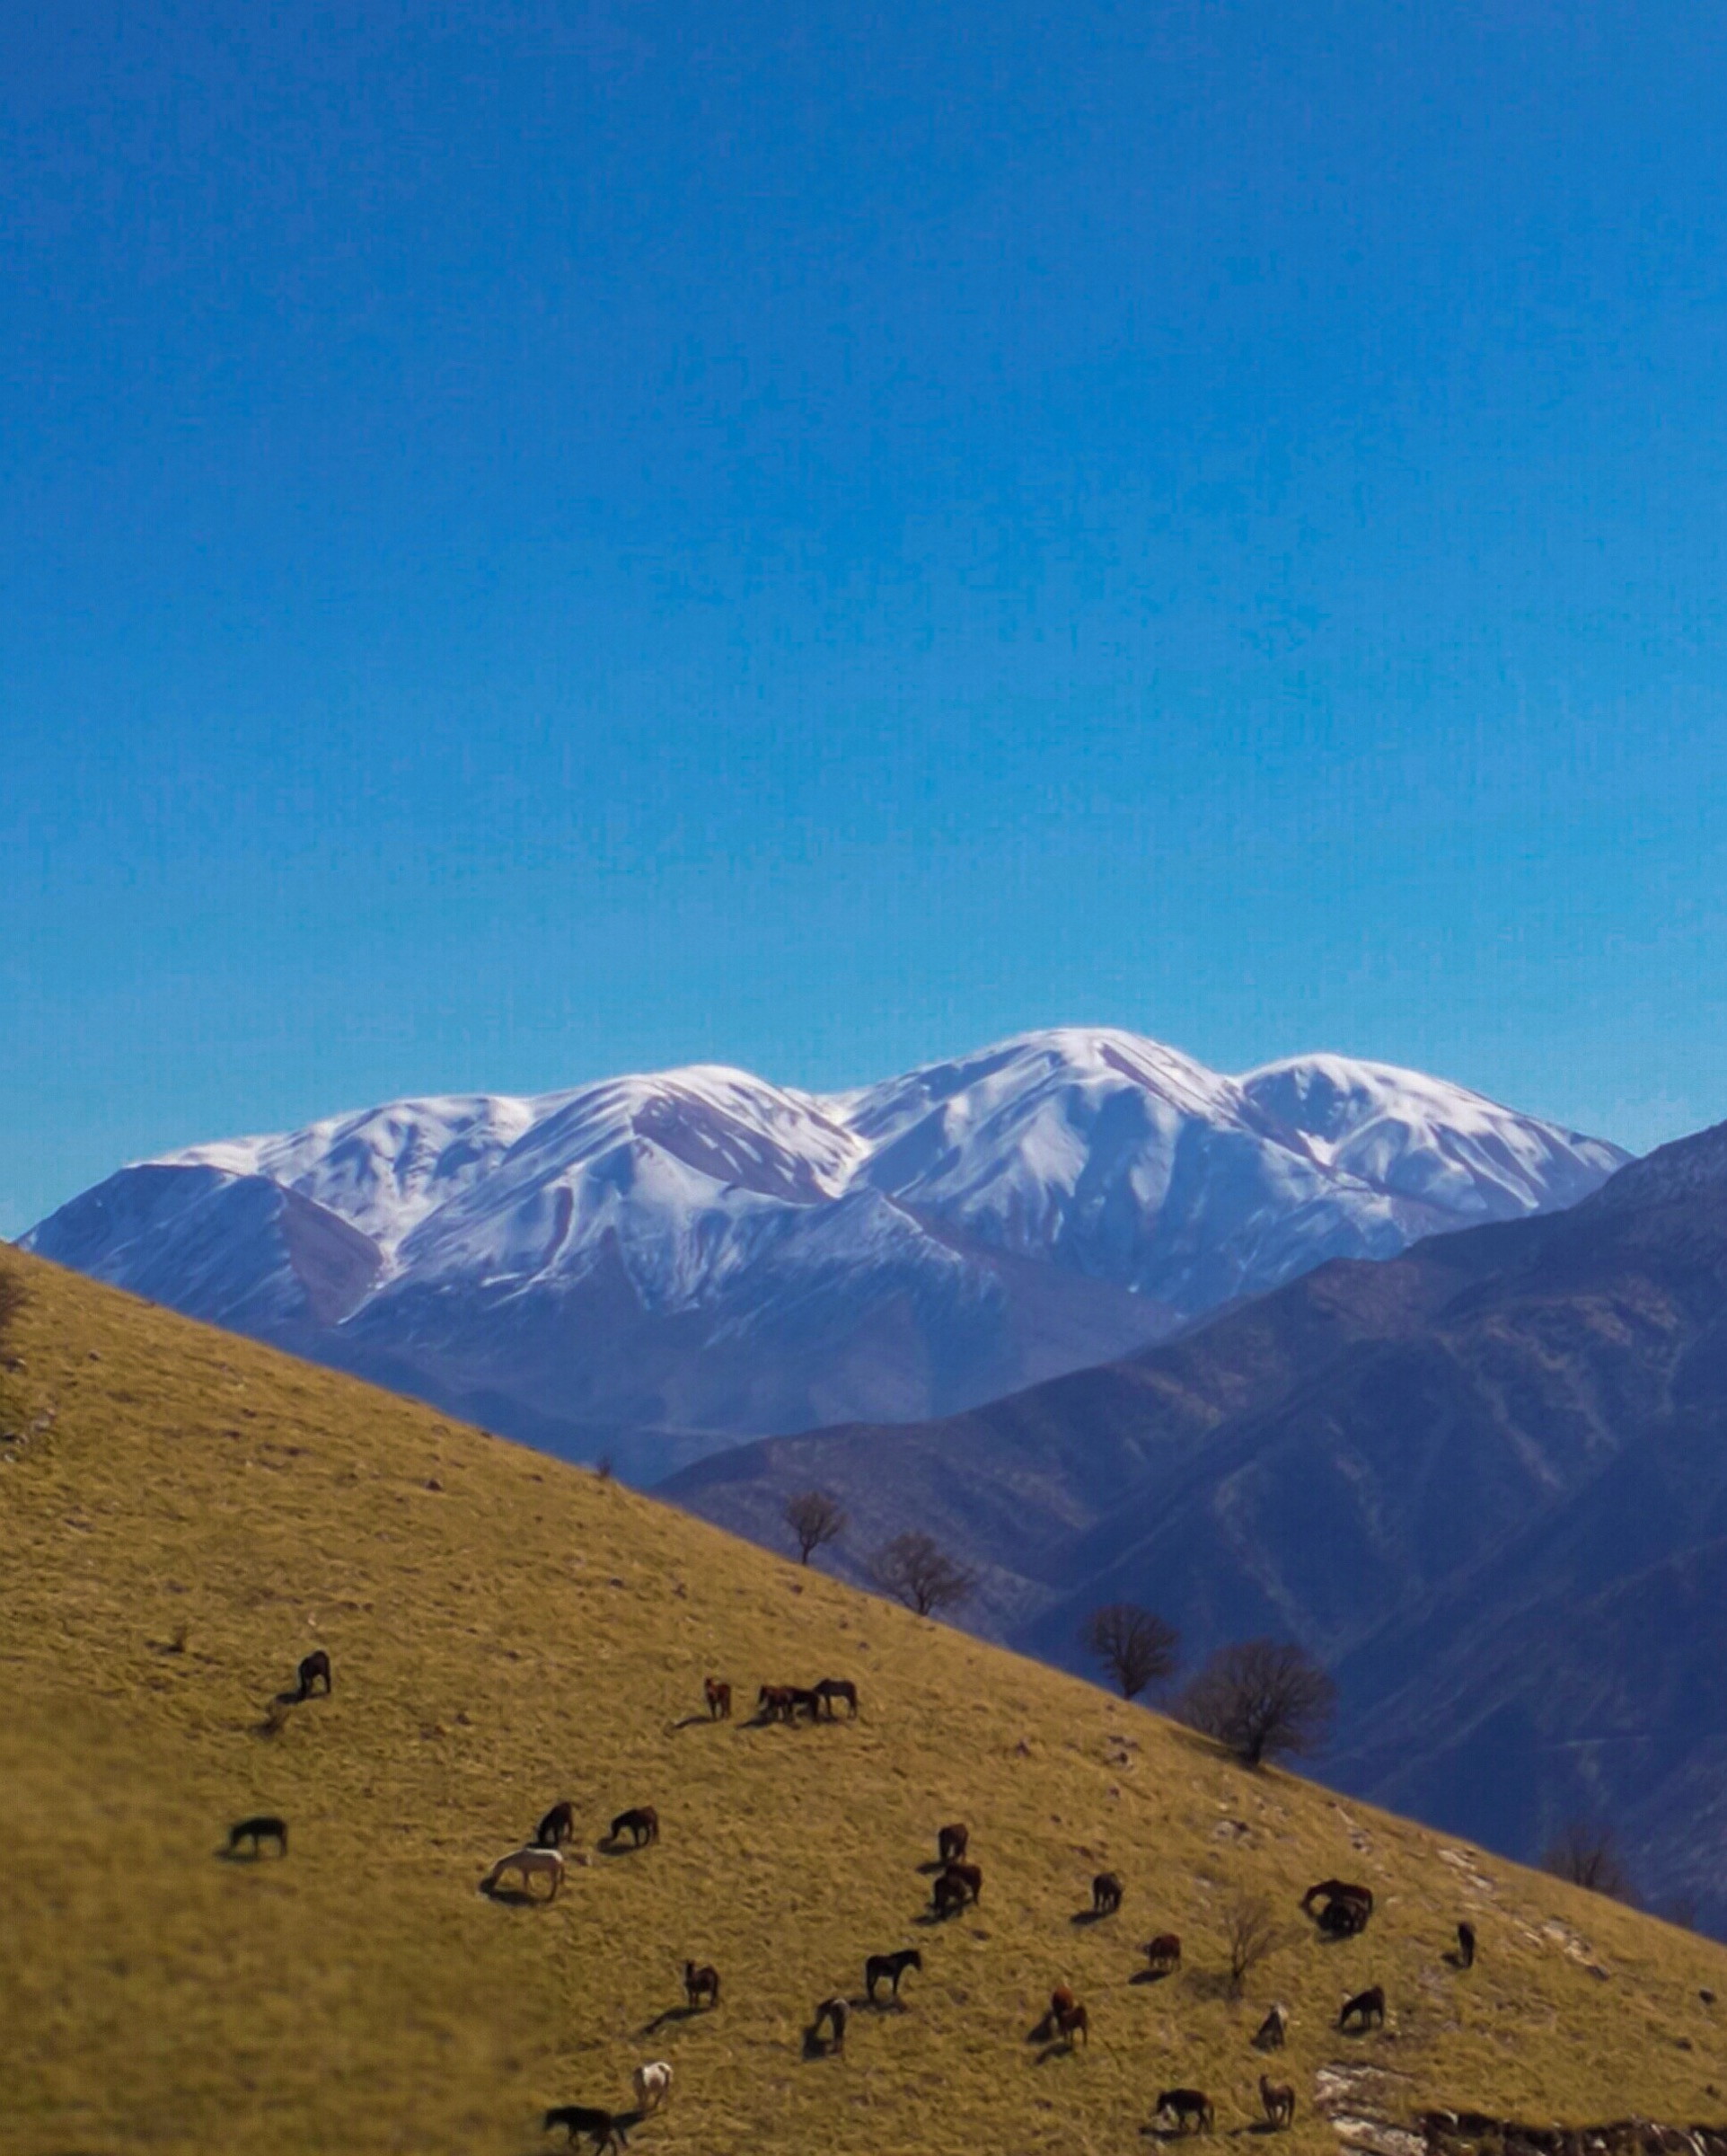 For Hana Raza, Korsh Ararat, and many other Kurds, the mountains have long been a safe haven. Photograph by Korsh Ararat